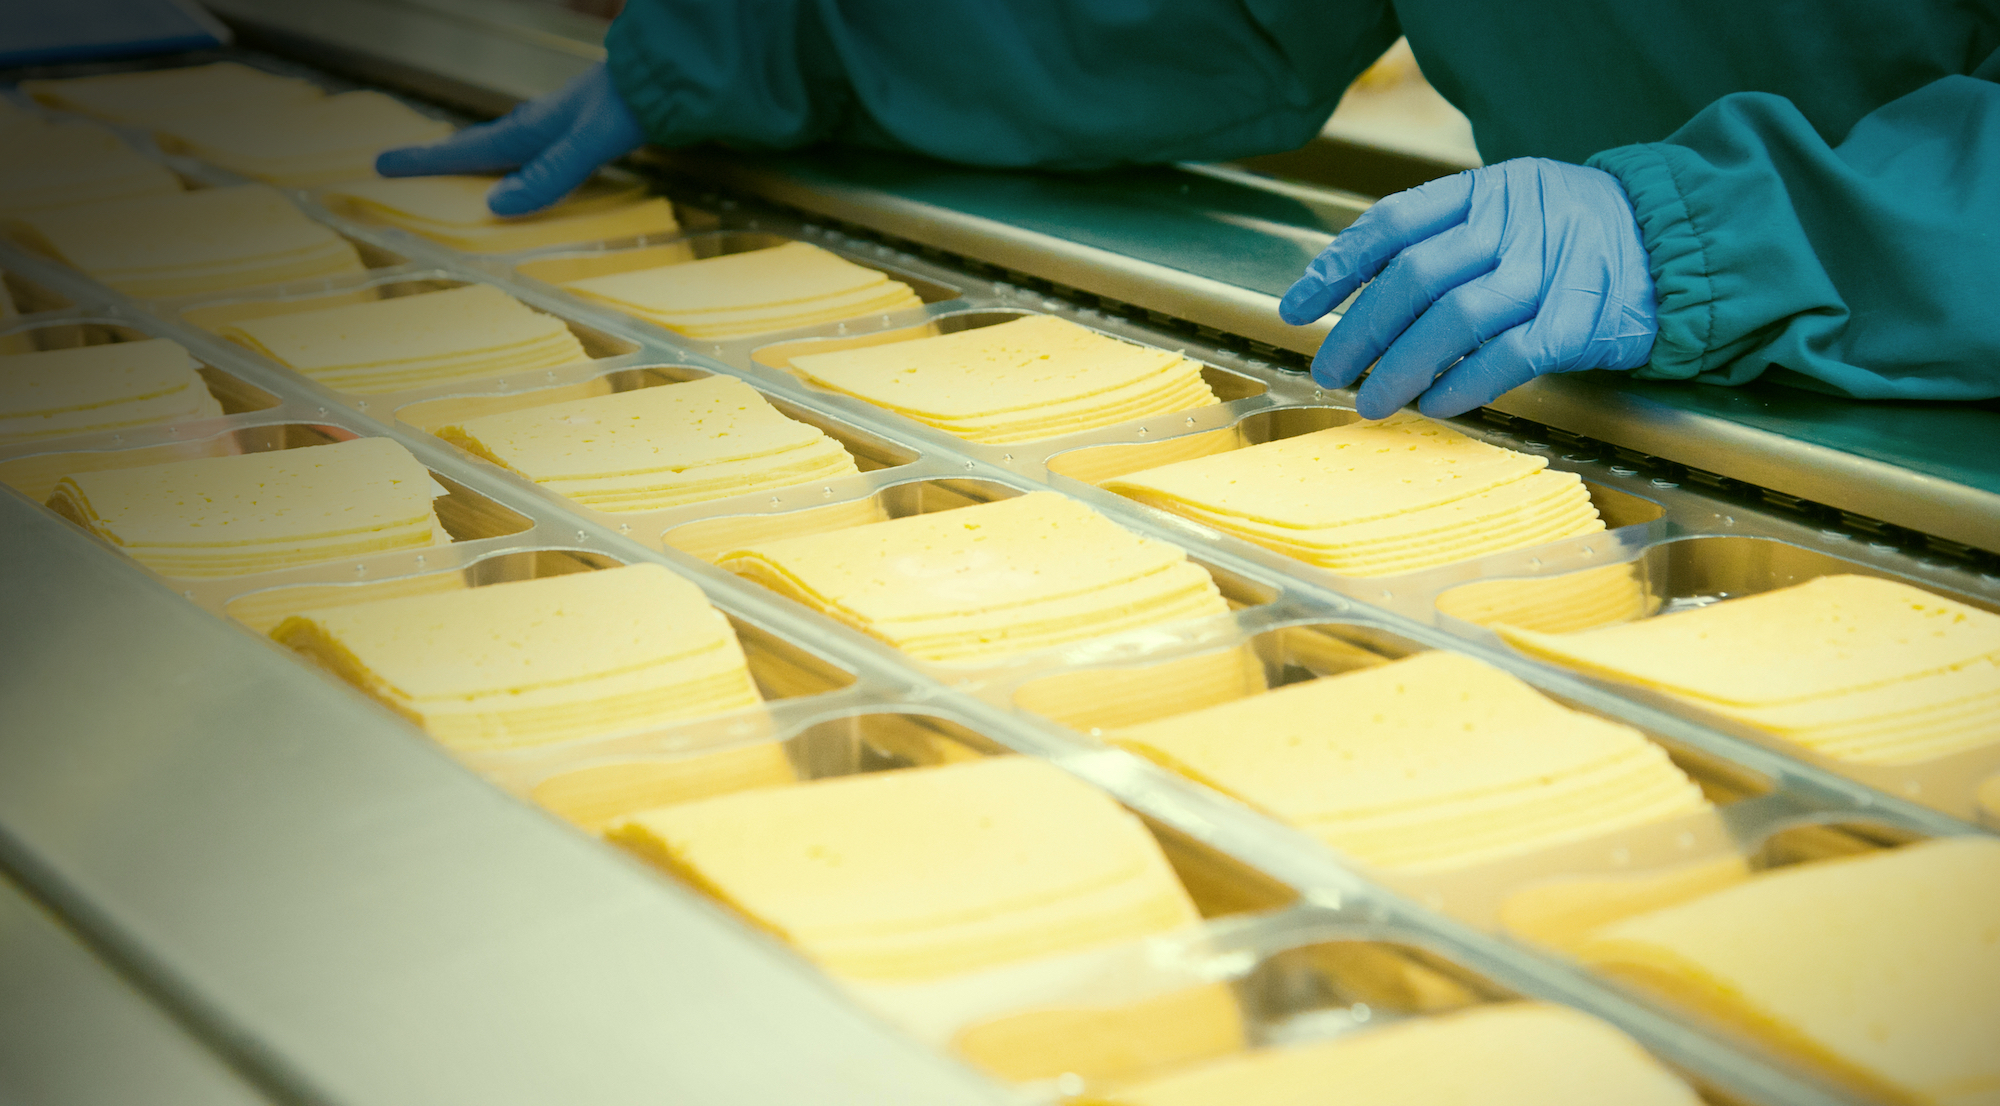 Detect Safety Hazards from Cheese Products